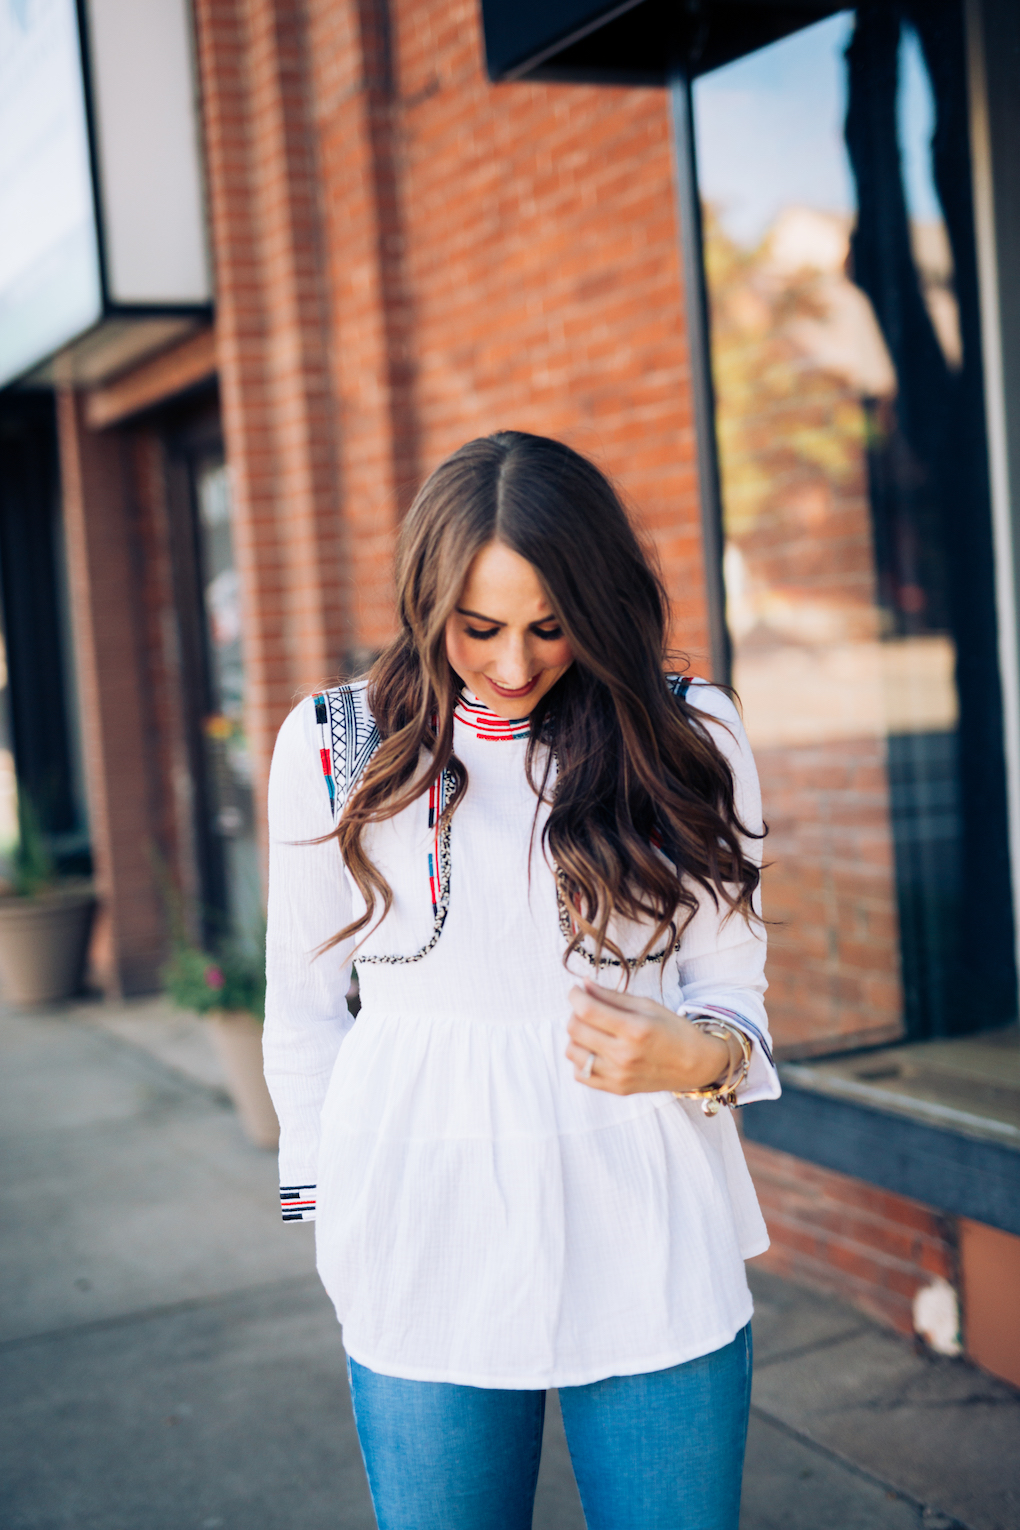 Girl in white peplum top with bright colored embroidery and skinny jeans with maroon booties